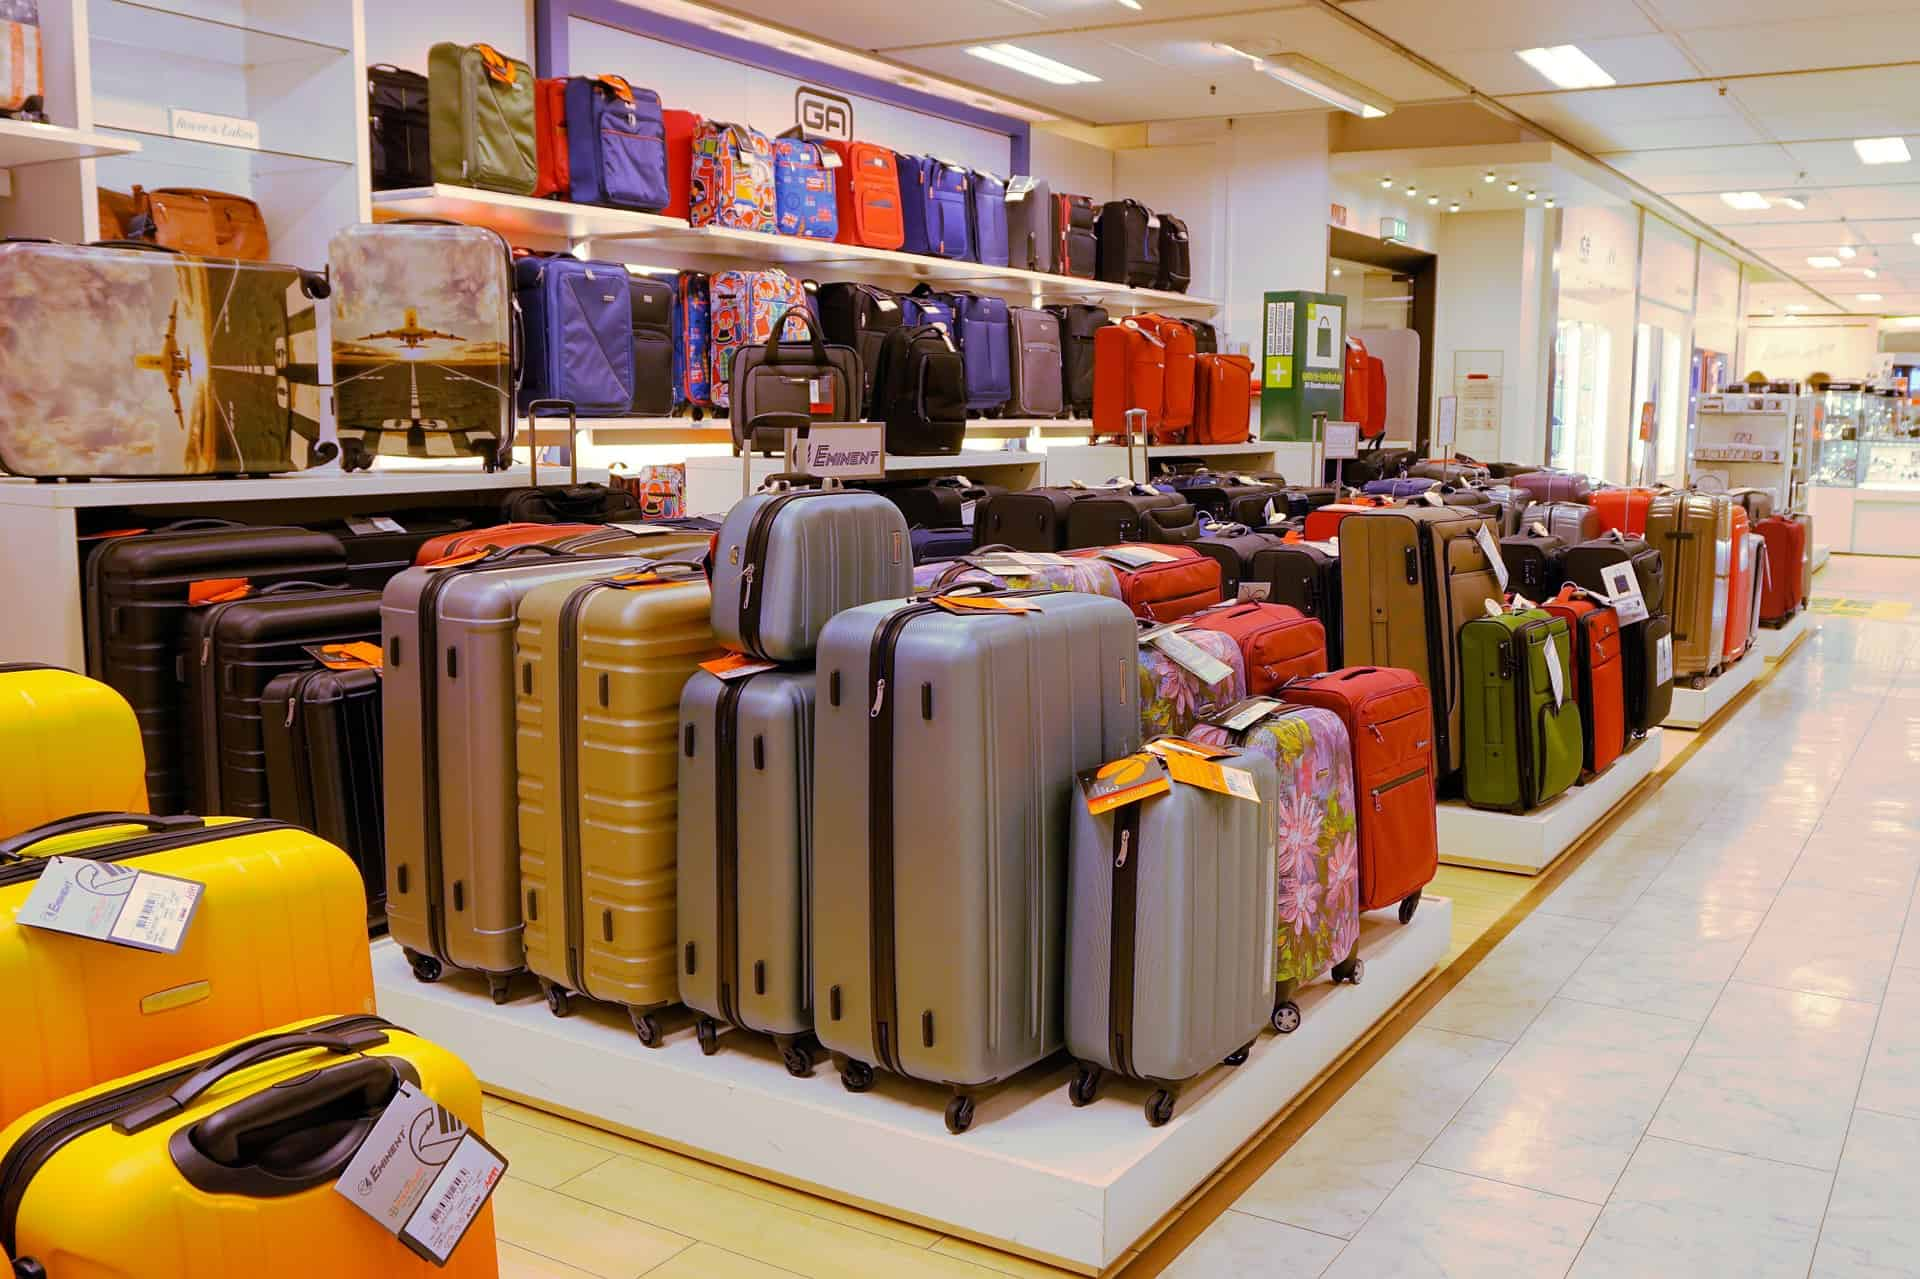 Luggage sets in store